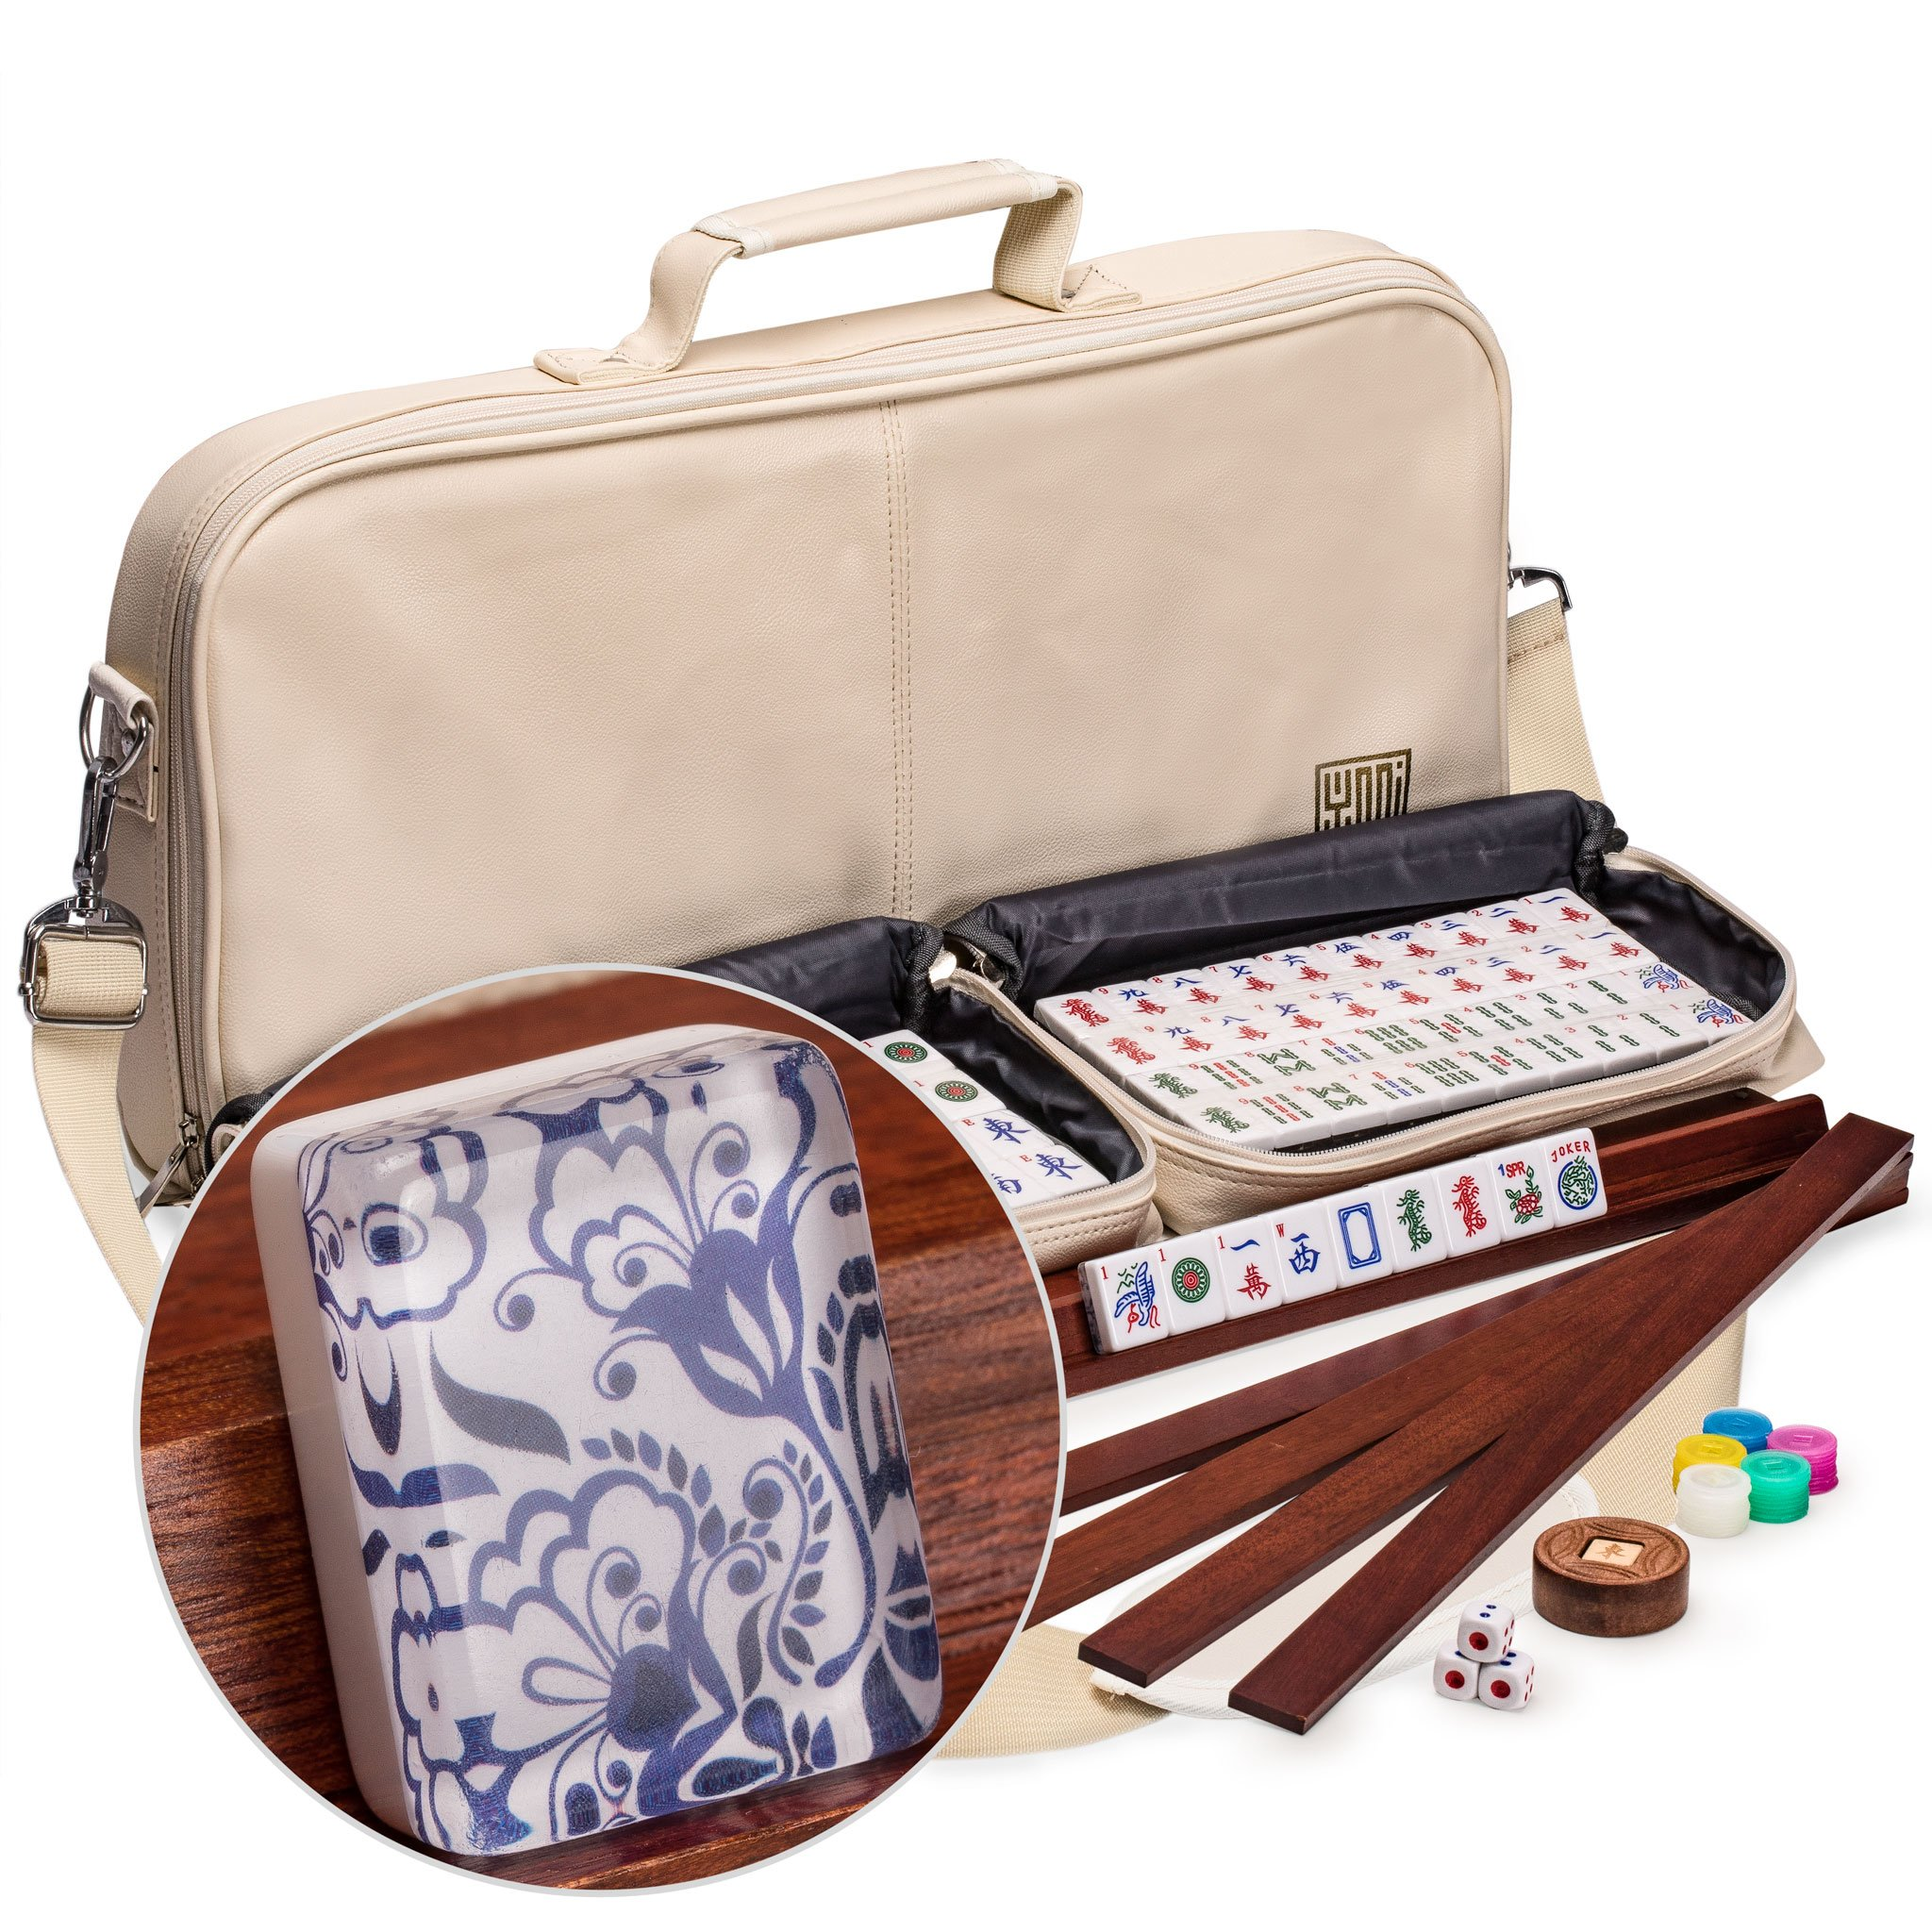 """American Mahjong (Mahjongg, Mah-Jongg) Set withj 166 Tiles, 4 All-in-One Racks with Pushers, Accessories and Soft Leatherette Case, The """"Chinoise"""""""